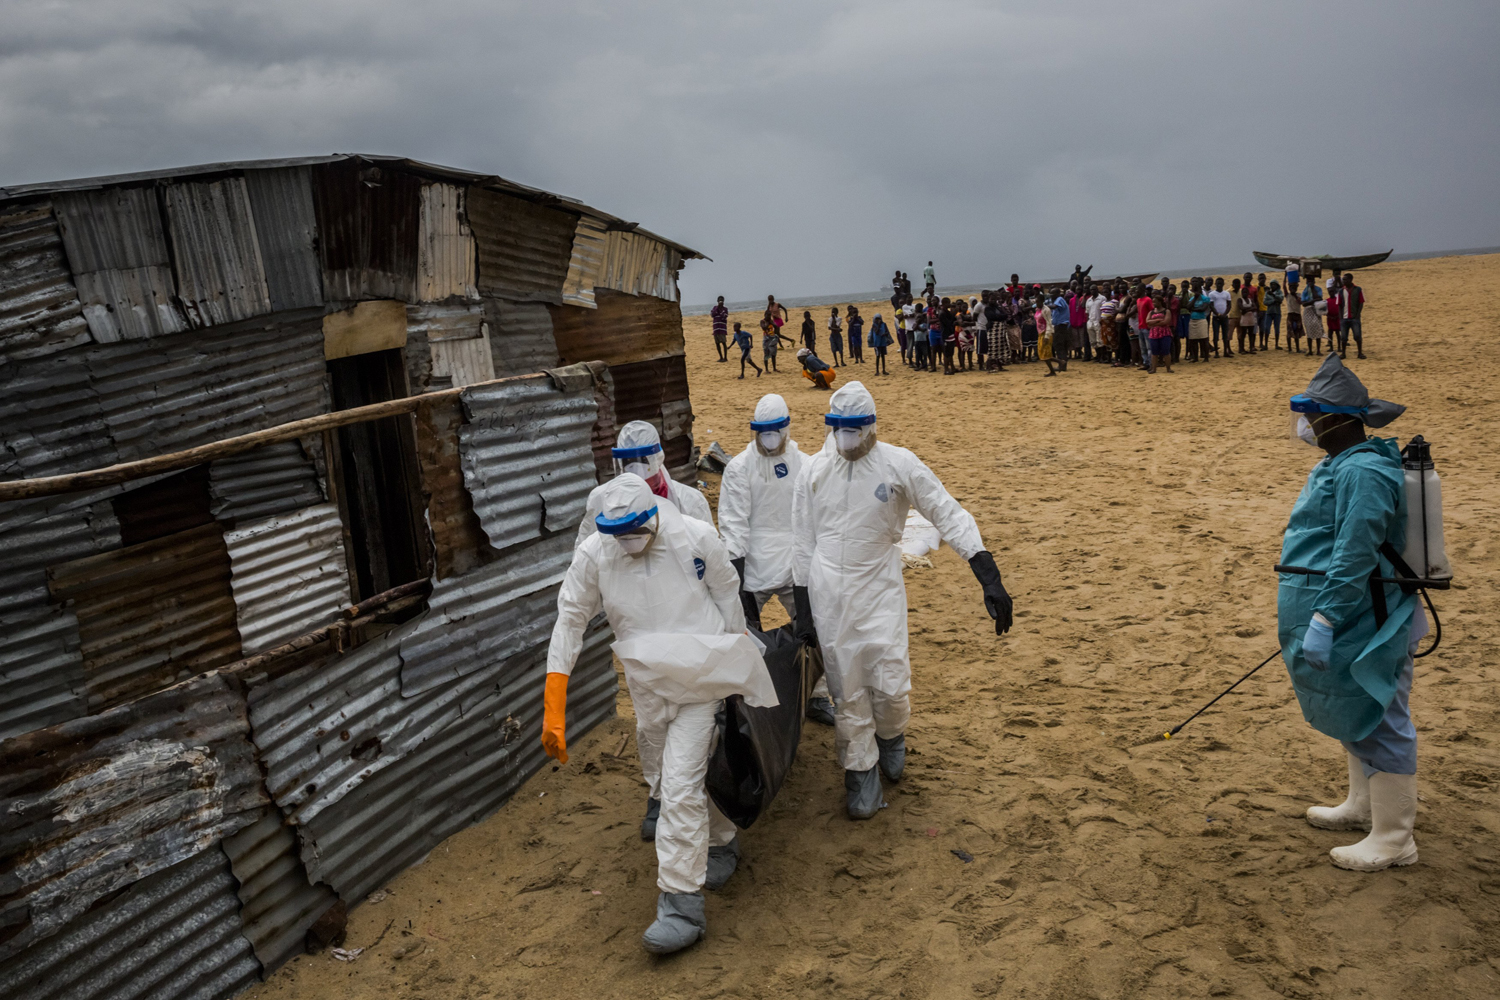 Liberian Red Cross burial team carry a body of a suspected Ebola victim from the West Point neighborhood in Monrovia, Liberia, Sept. 17, 2014.